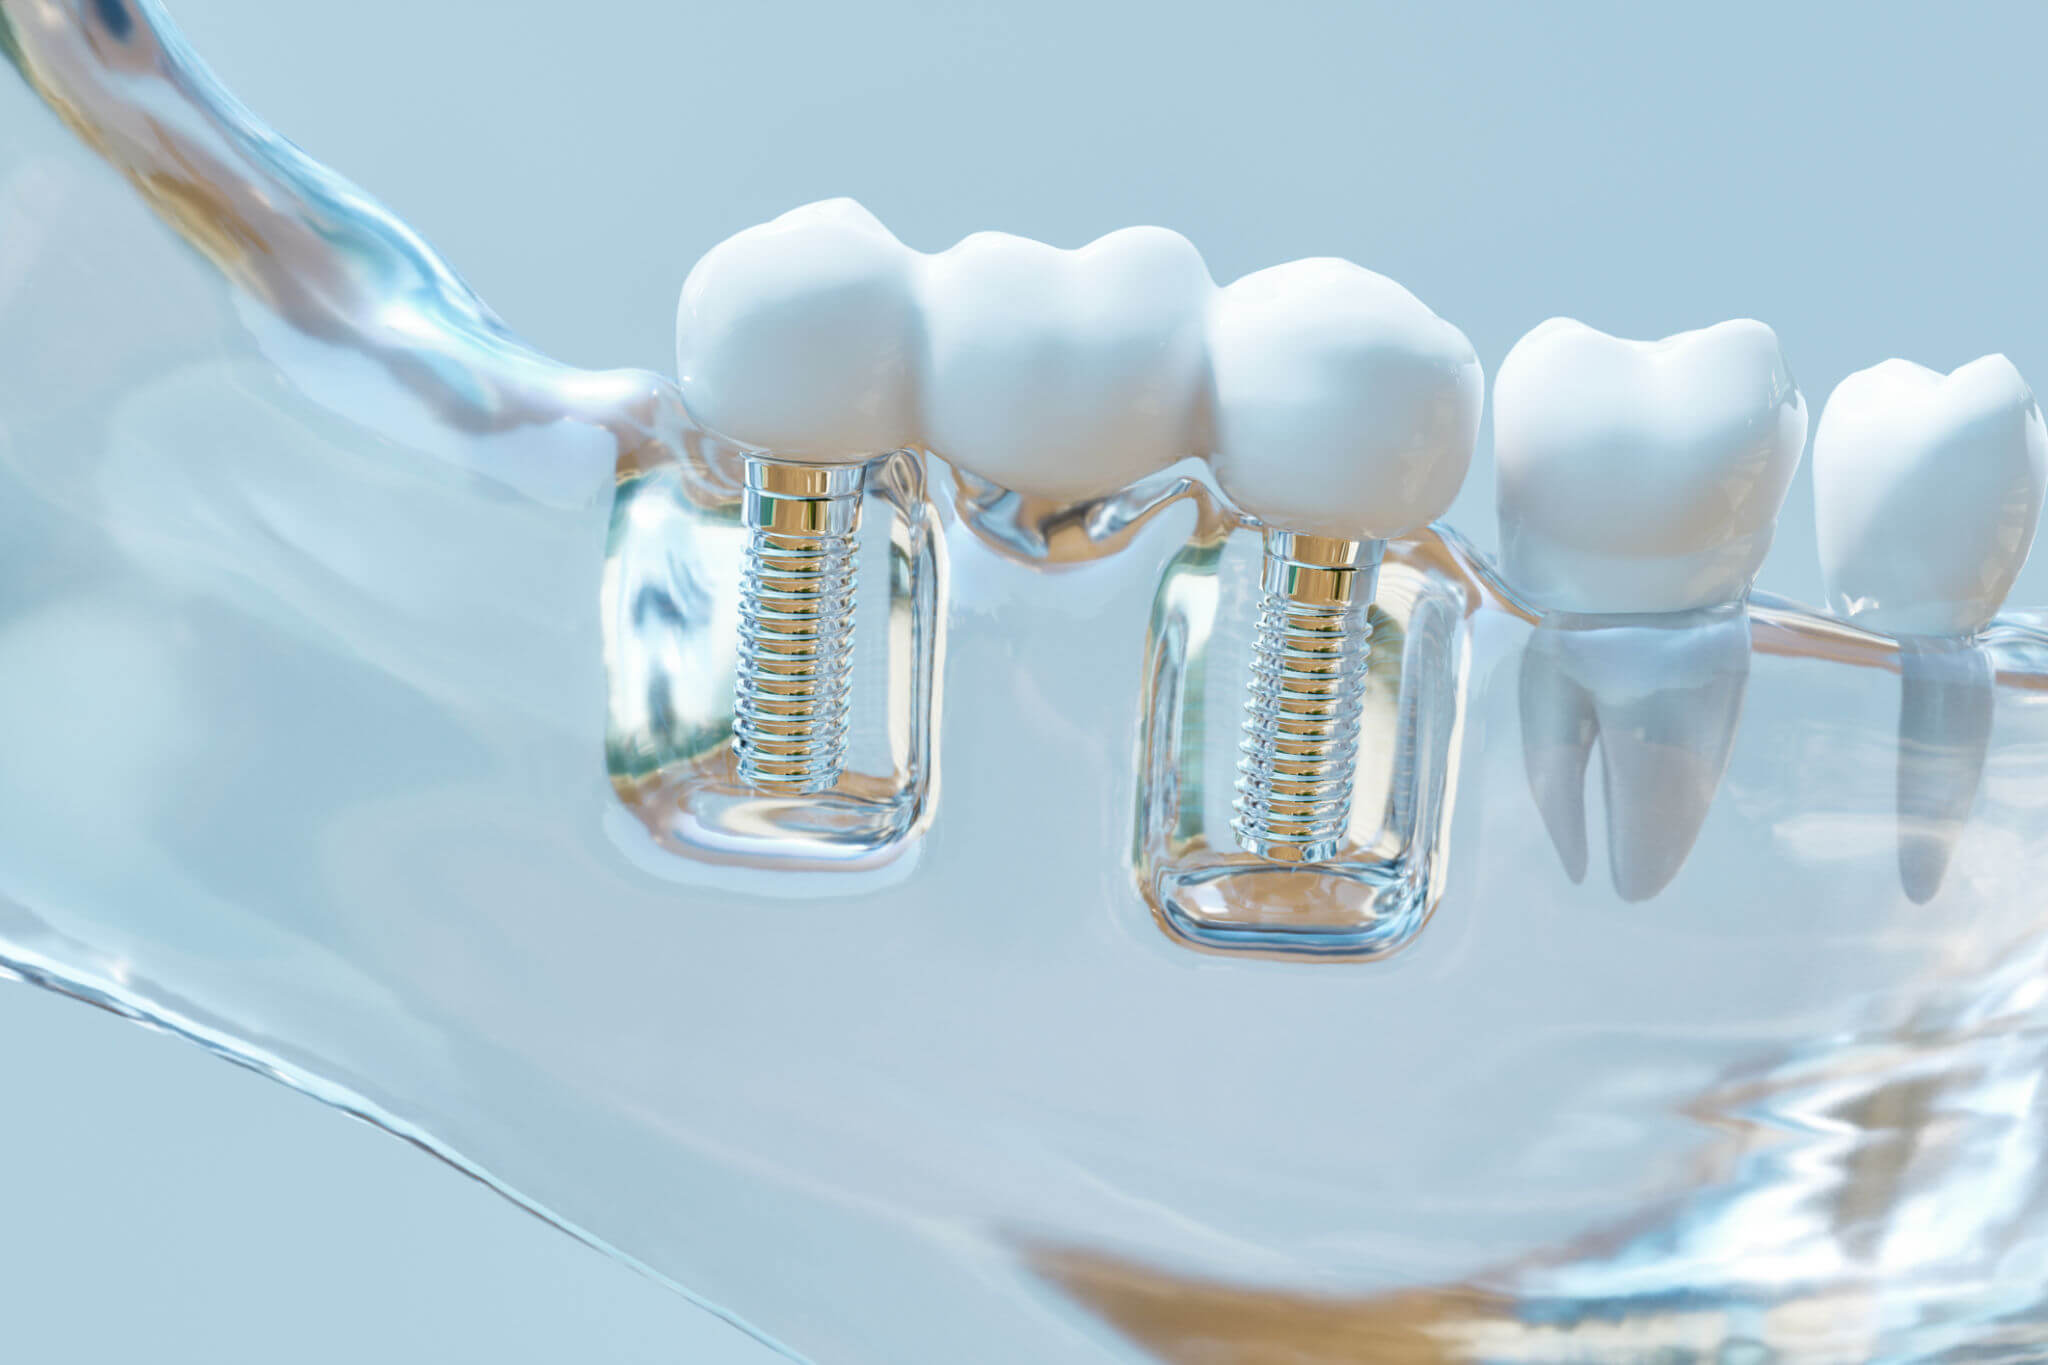 Tooth human implant model Oral surgery in Coral Springs fl